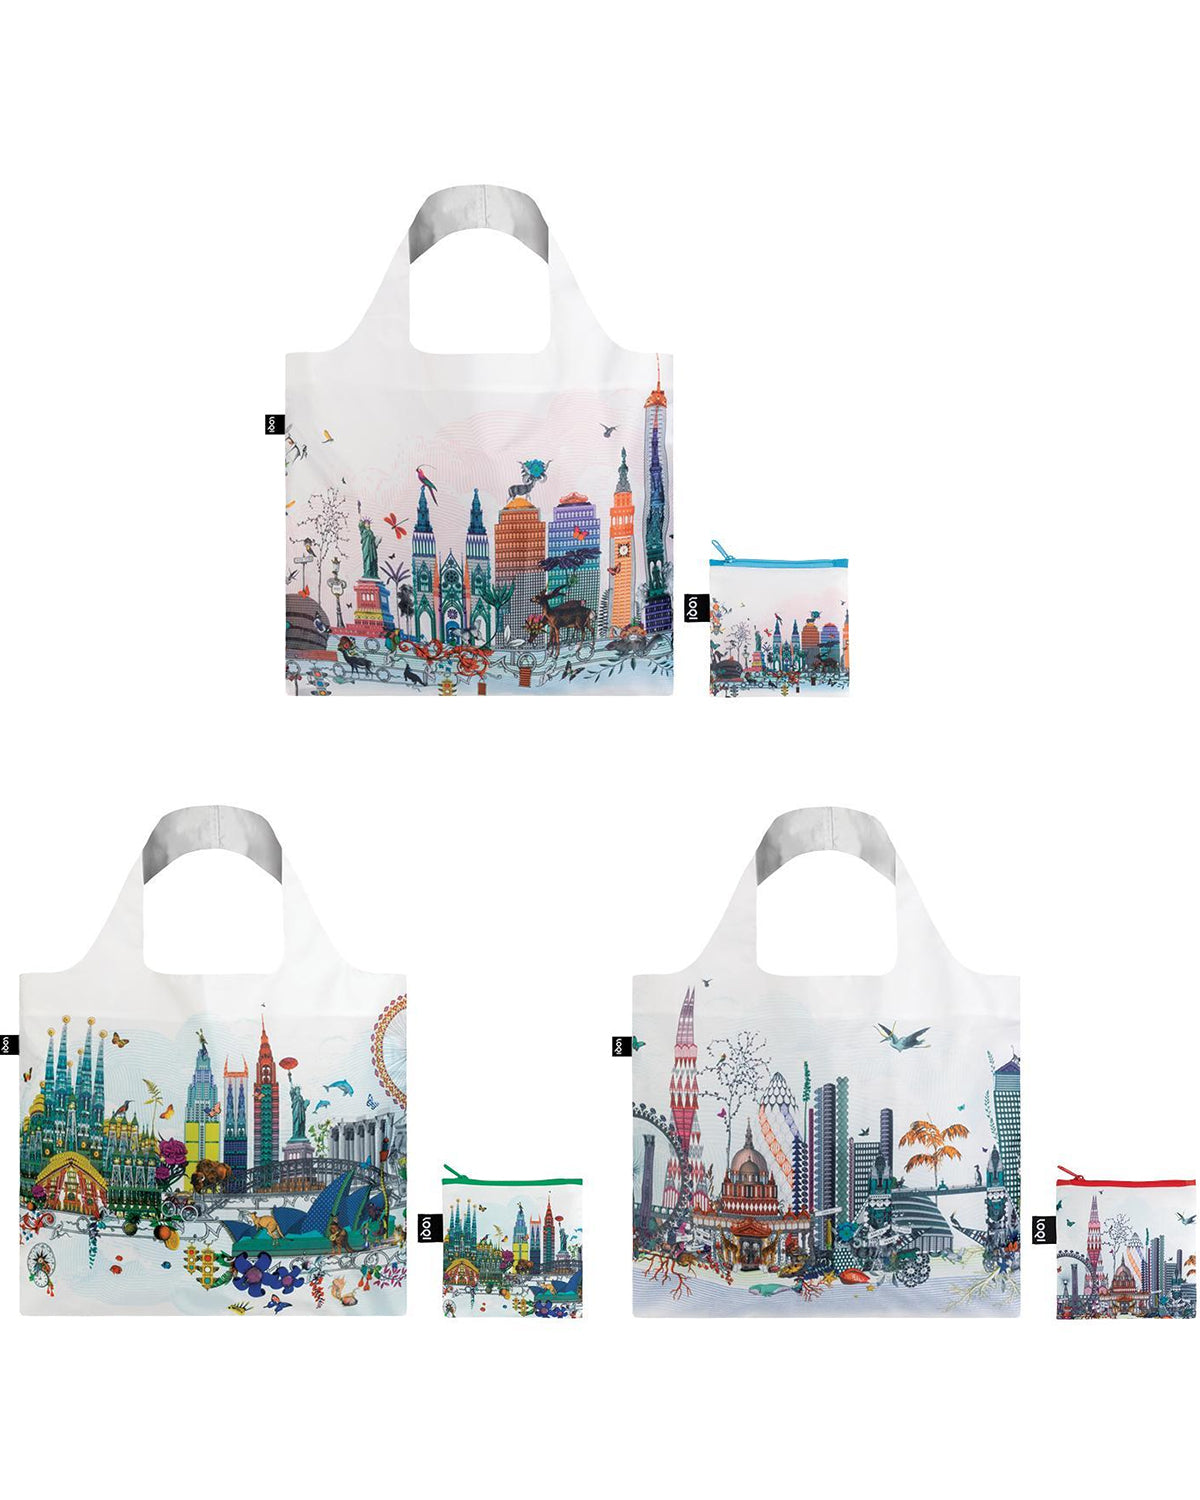 LOQI Kristjana S Williams Interiors Reusable Shopping Bags (Set of 3), New York, London, Skyline